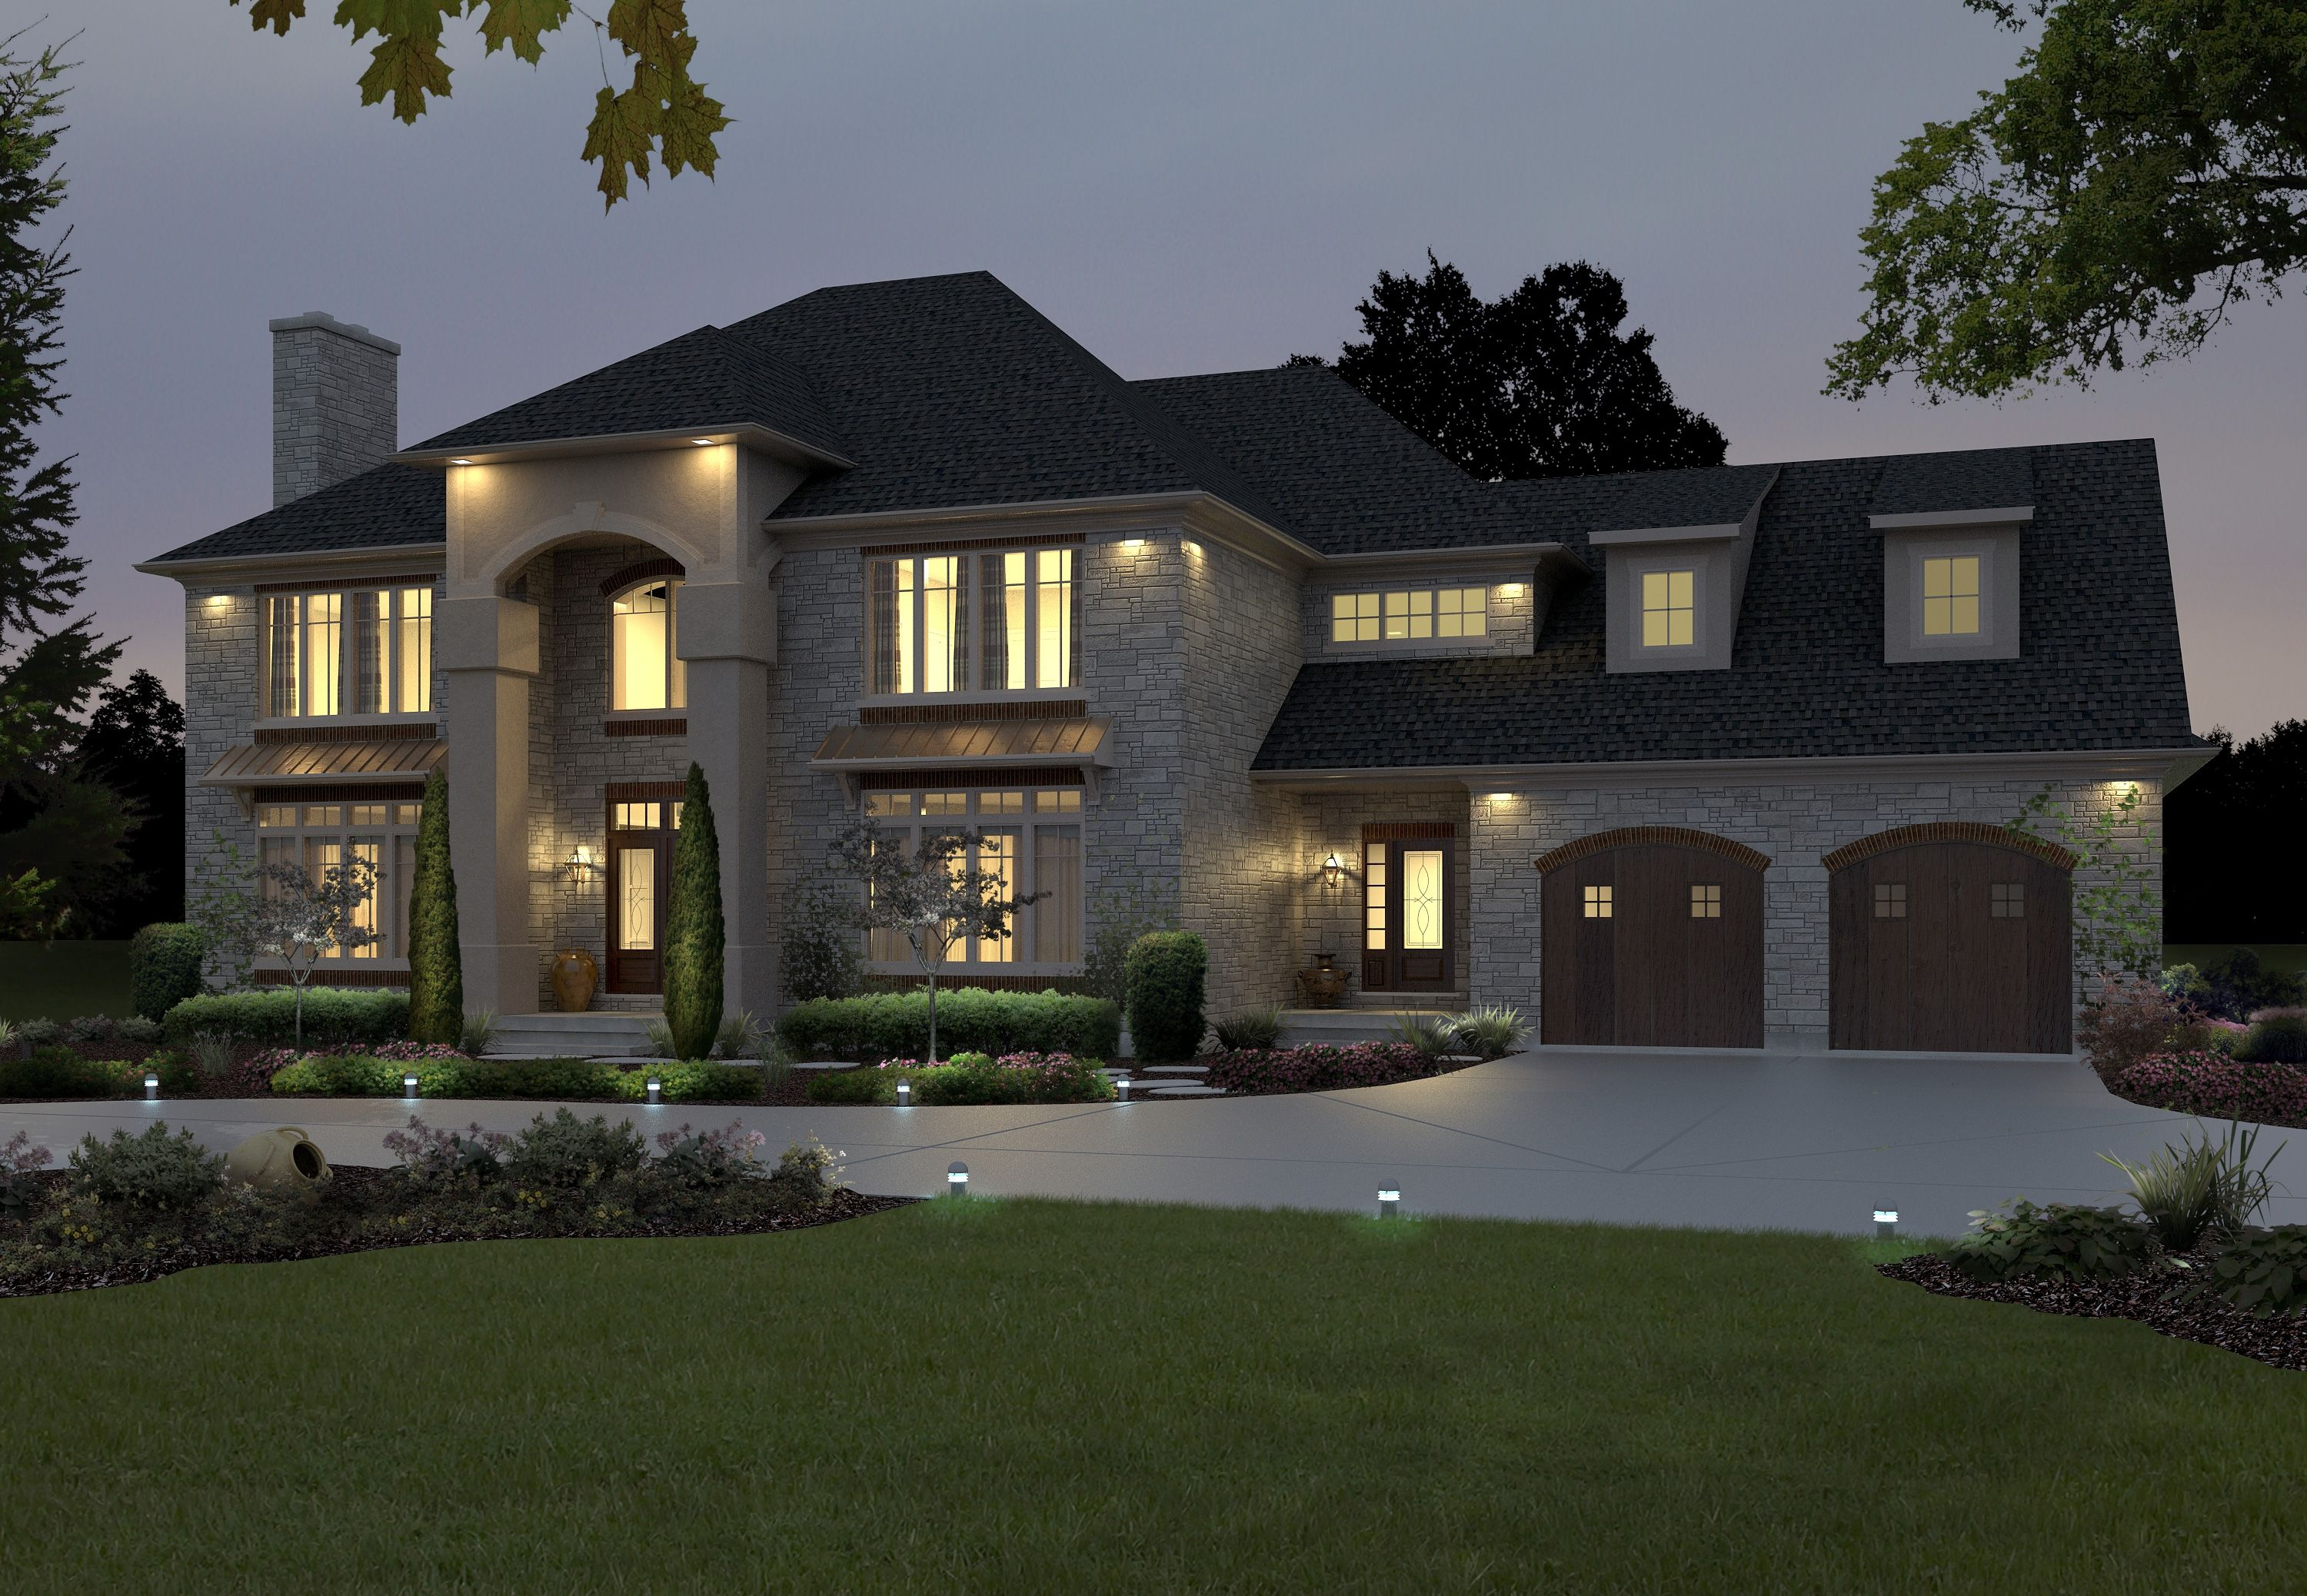 Modern Home Designs 2015 As Two Story House Design Plans For Minimalist The Best Home Des Best Modern House Design Modern House Plans House Architecture Styles